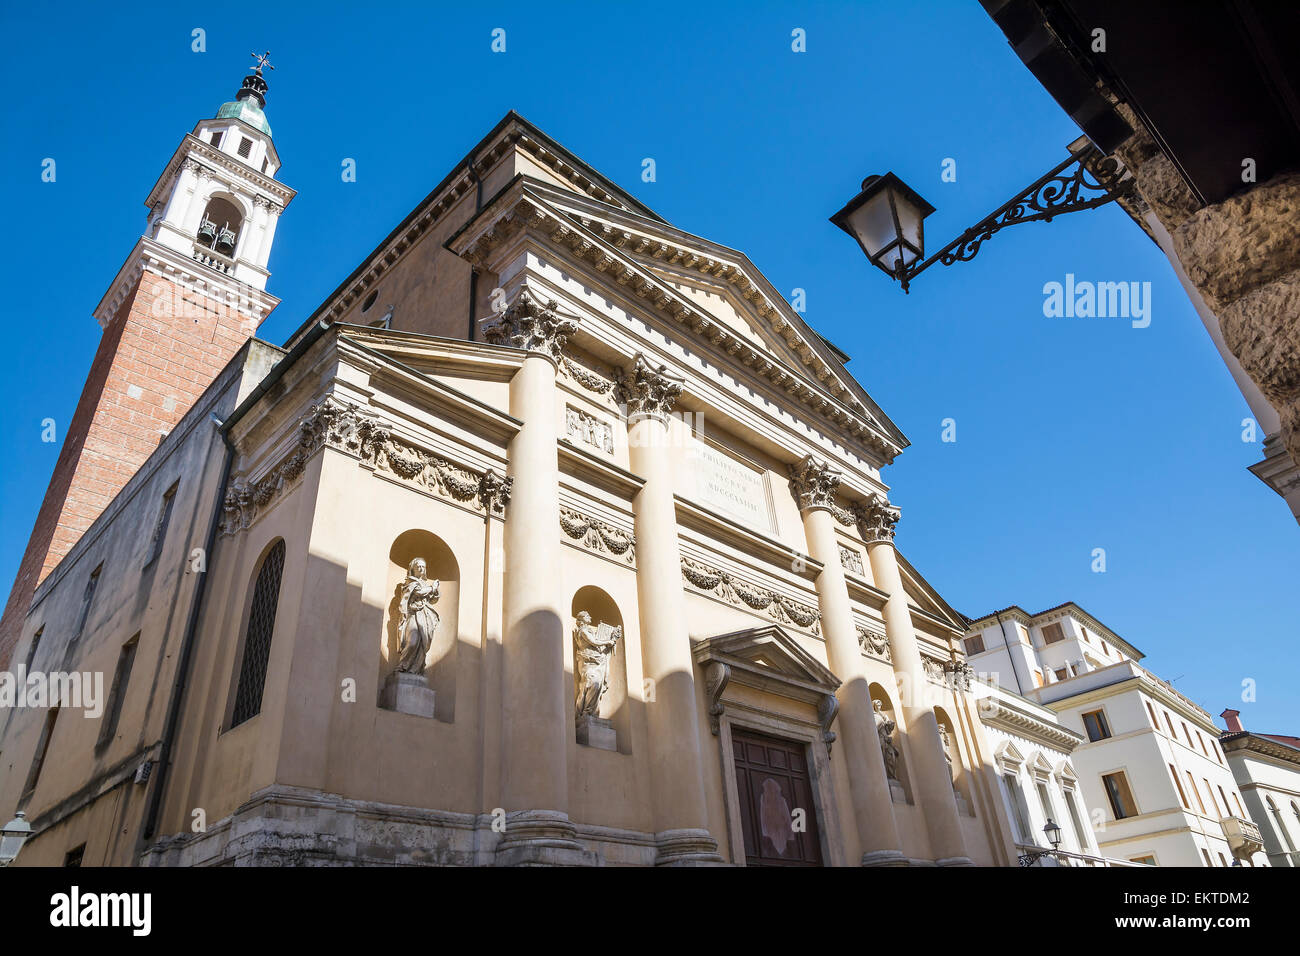 Vicenza,Italy-April 3,2015:view of the churc of San Marcello in Vicenza located on Palladio street during a sunny - Stock Image